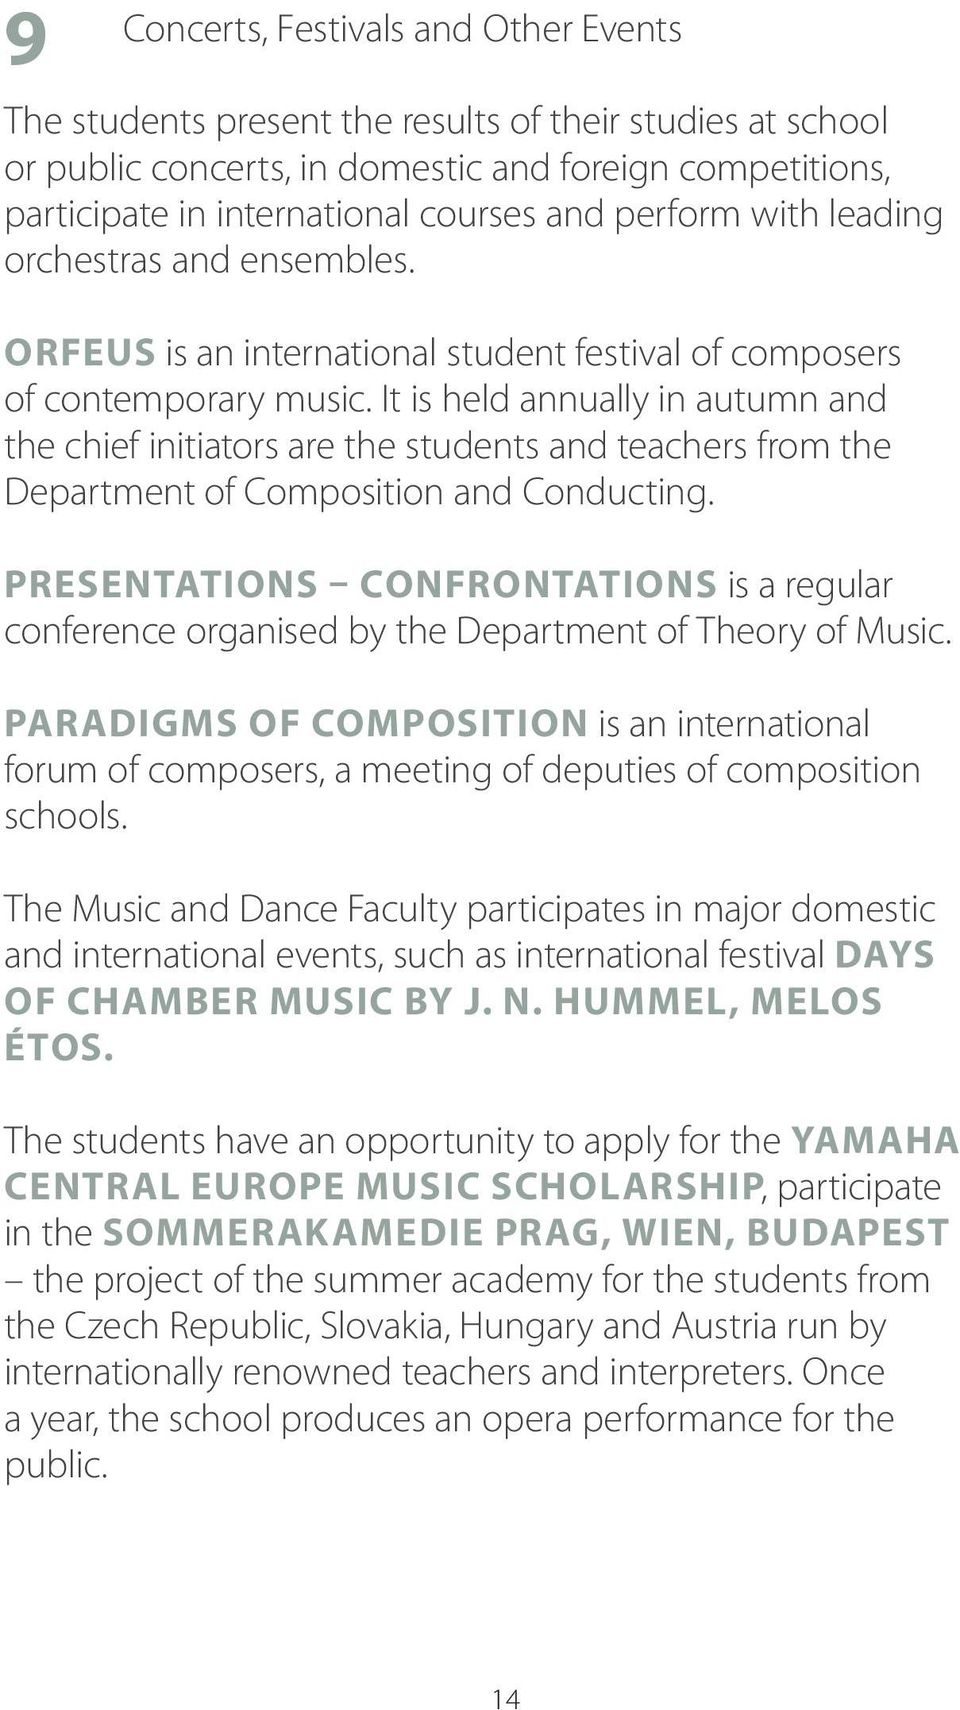 It is held annually in autumn and the chief initiators are the students and teachers from the Department of Composition and Conducting.